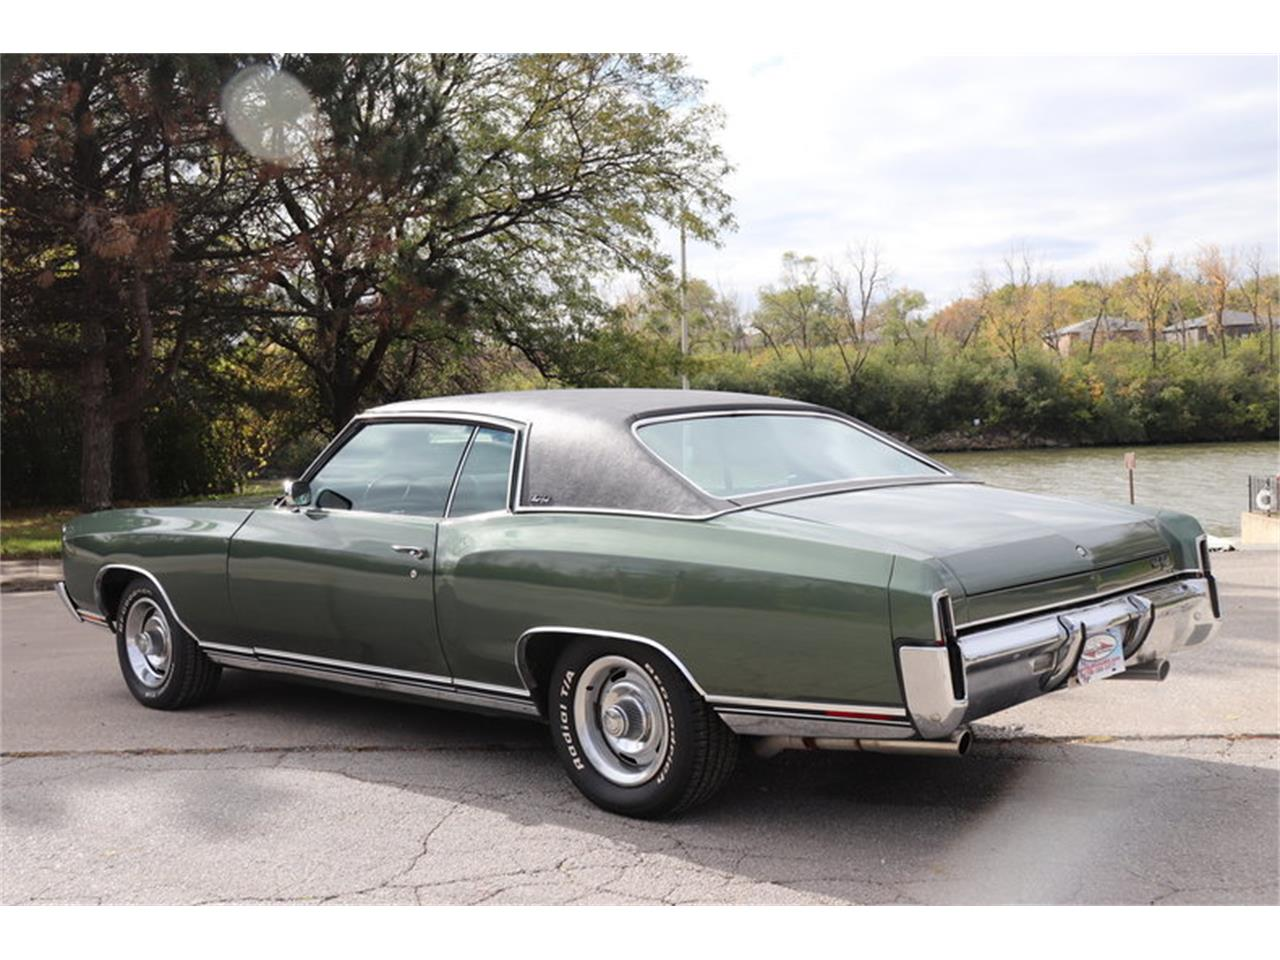 1970 Chevrolet Monte Carlo For Sale Cc 1037618 70 Gold Large Picture Of M8mq